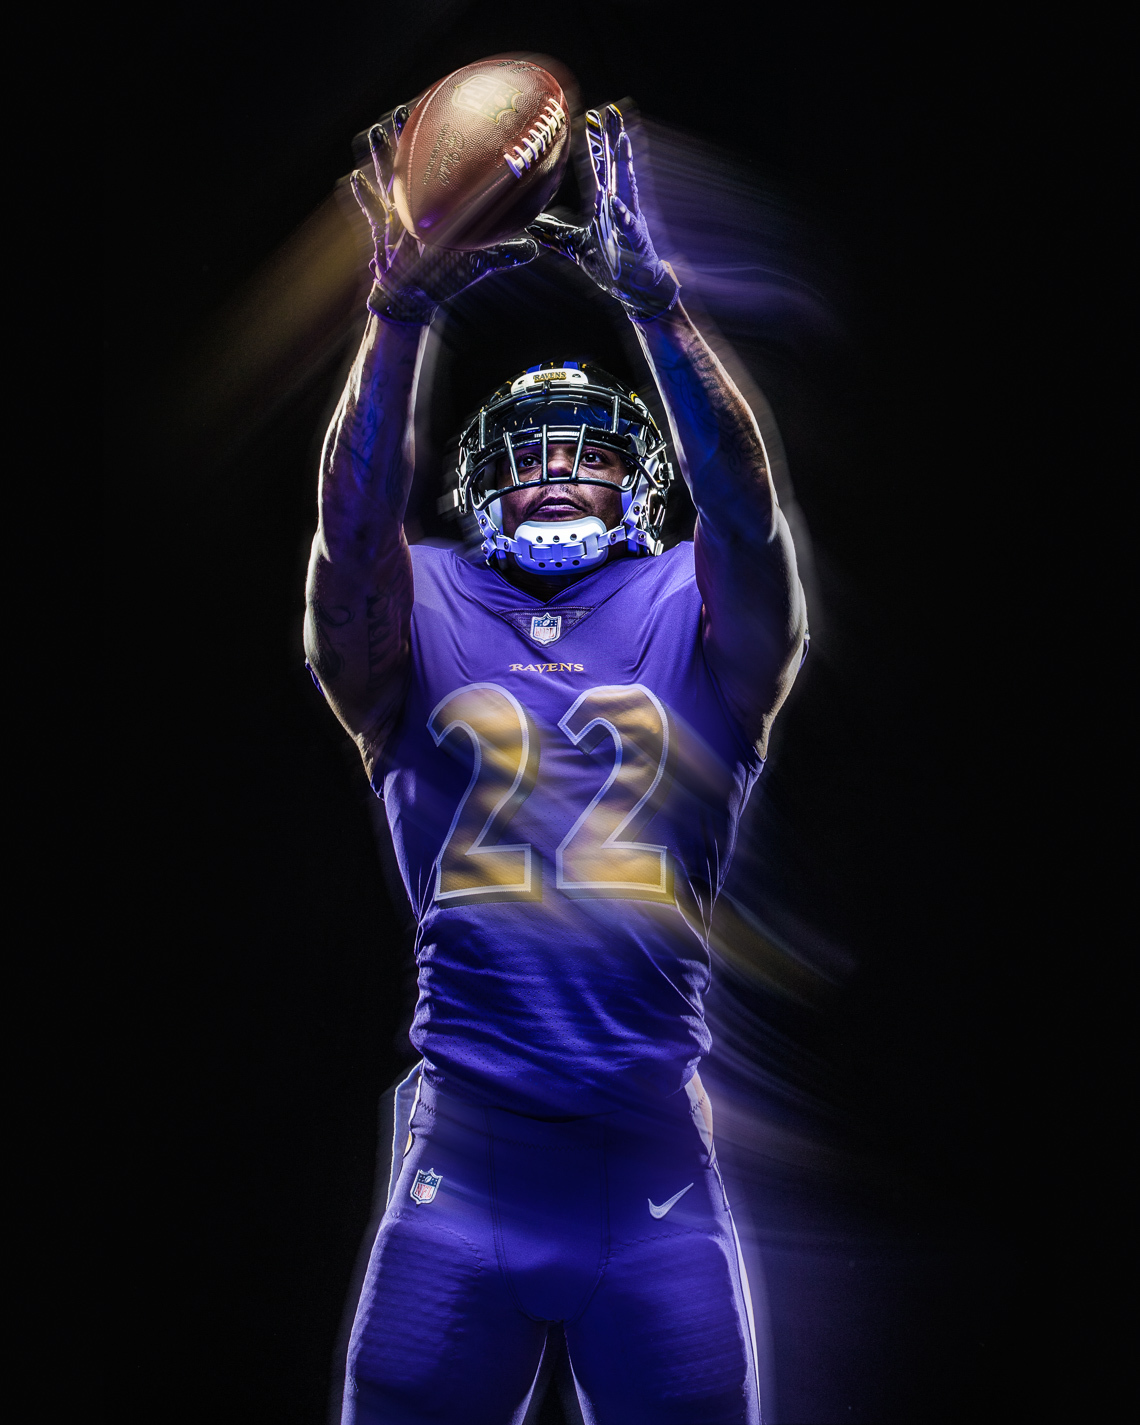 NFL Color Rush uniforms for Baltimore Ravens football team designed by NIKE football color rush photographed by commercial sports advertising photographer in baltimore maryland